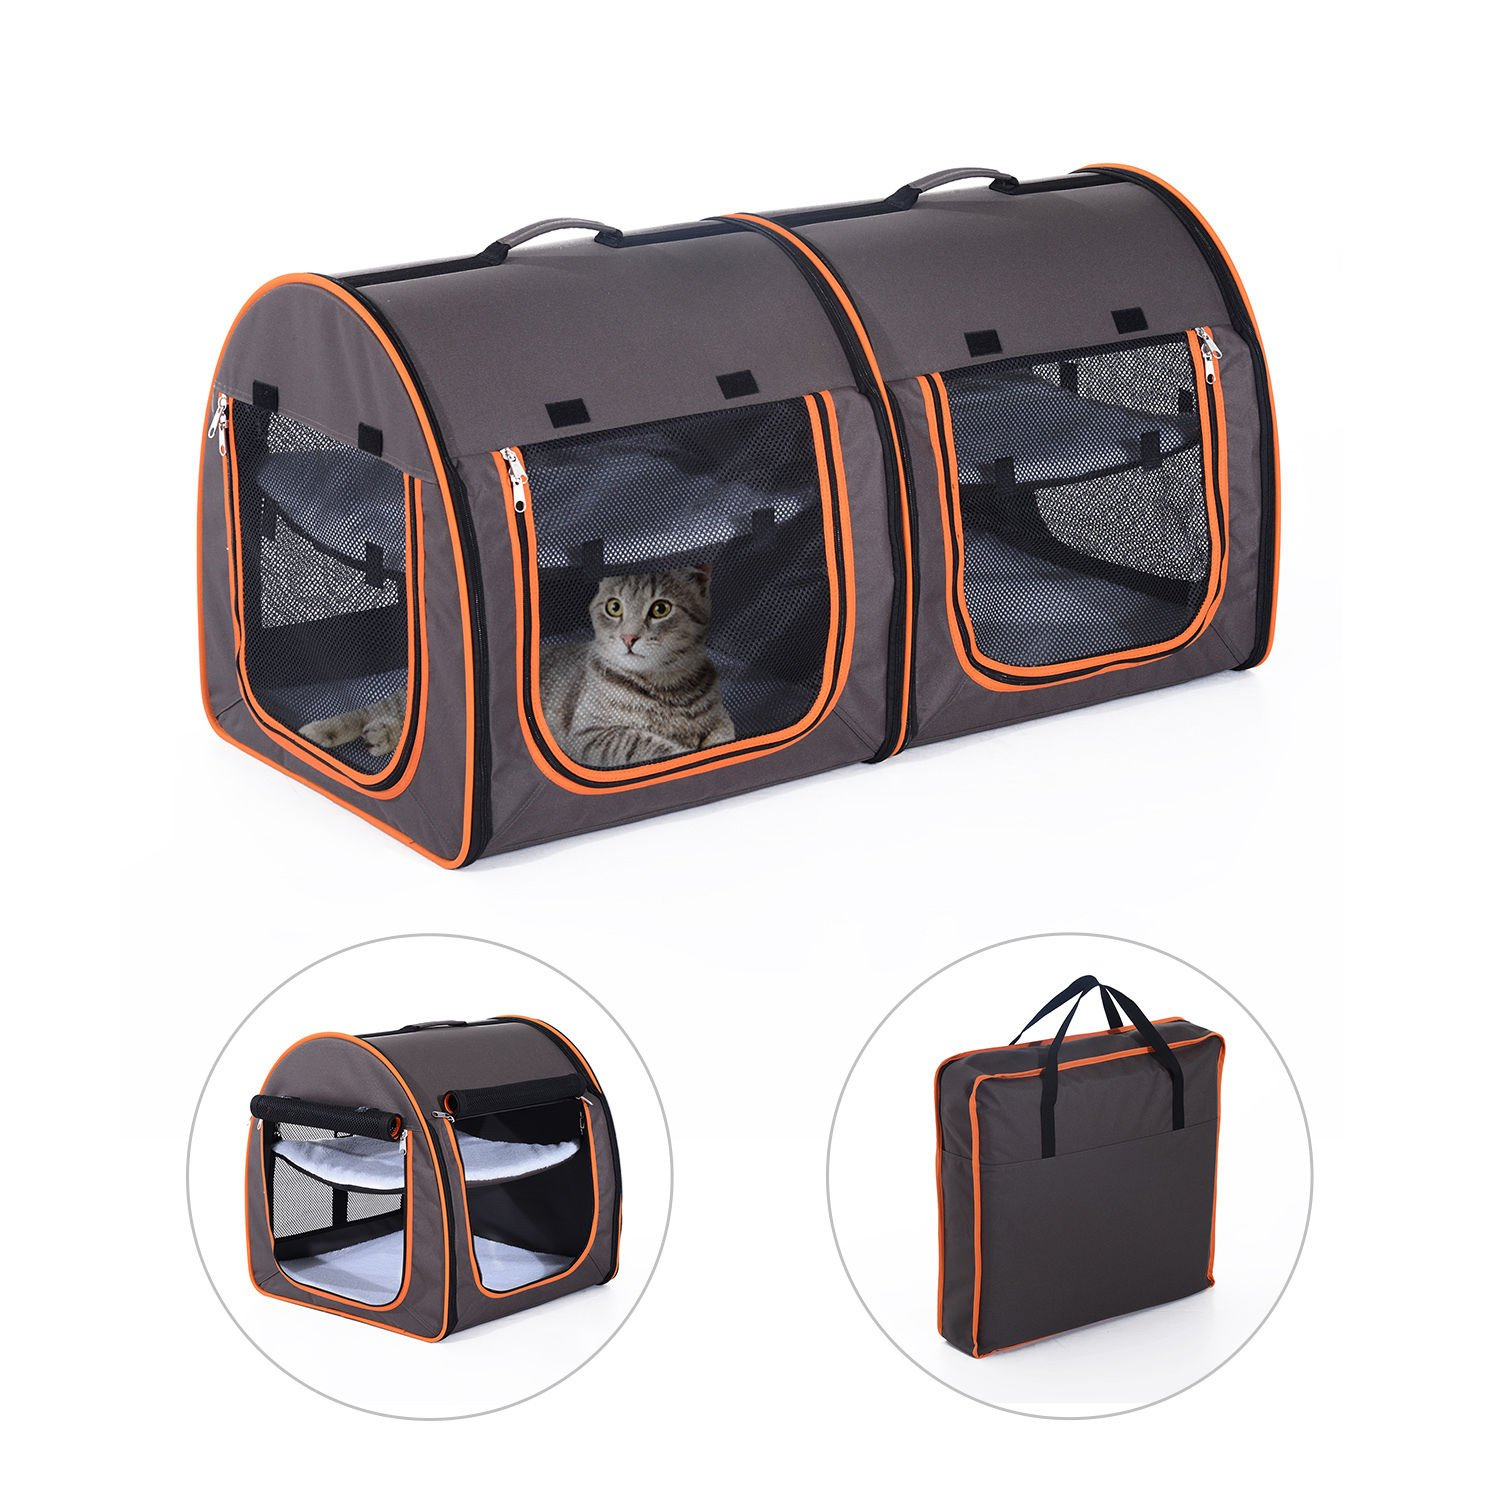 Pawhut 39'' Soft-Sided Portable Dual Compartment Pet Carrier - Gray by PawHut